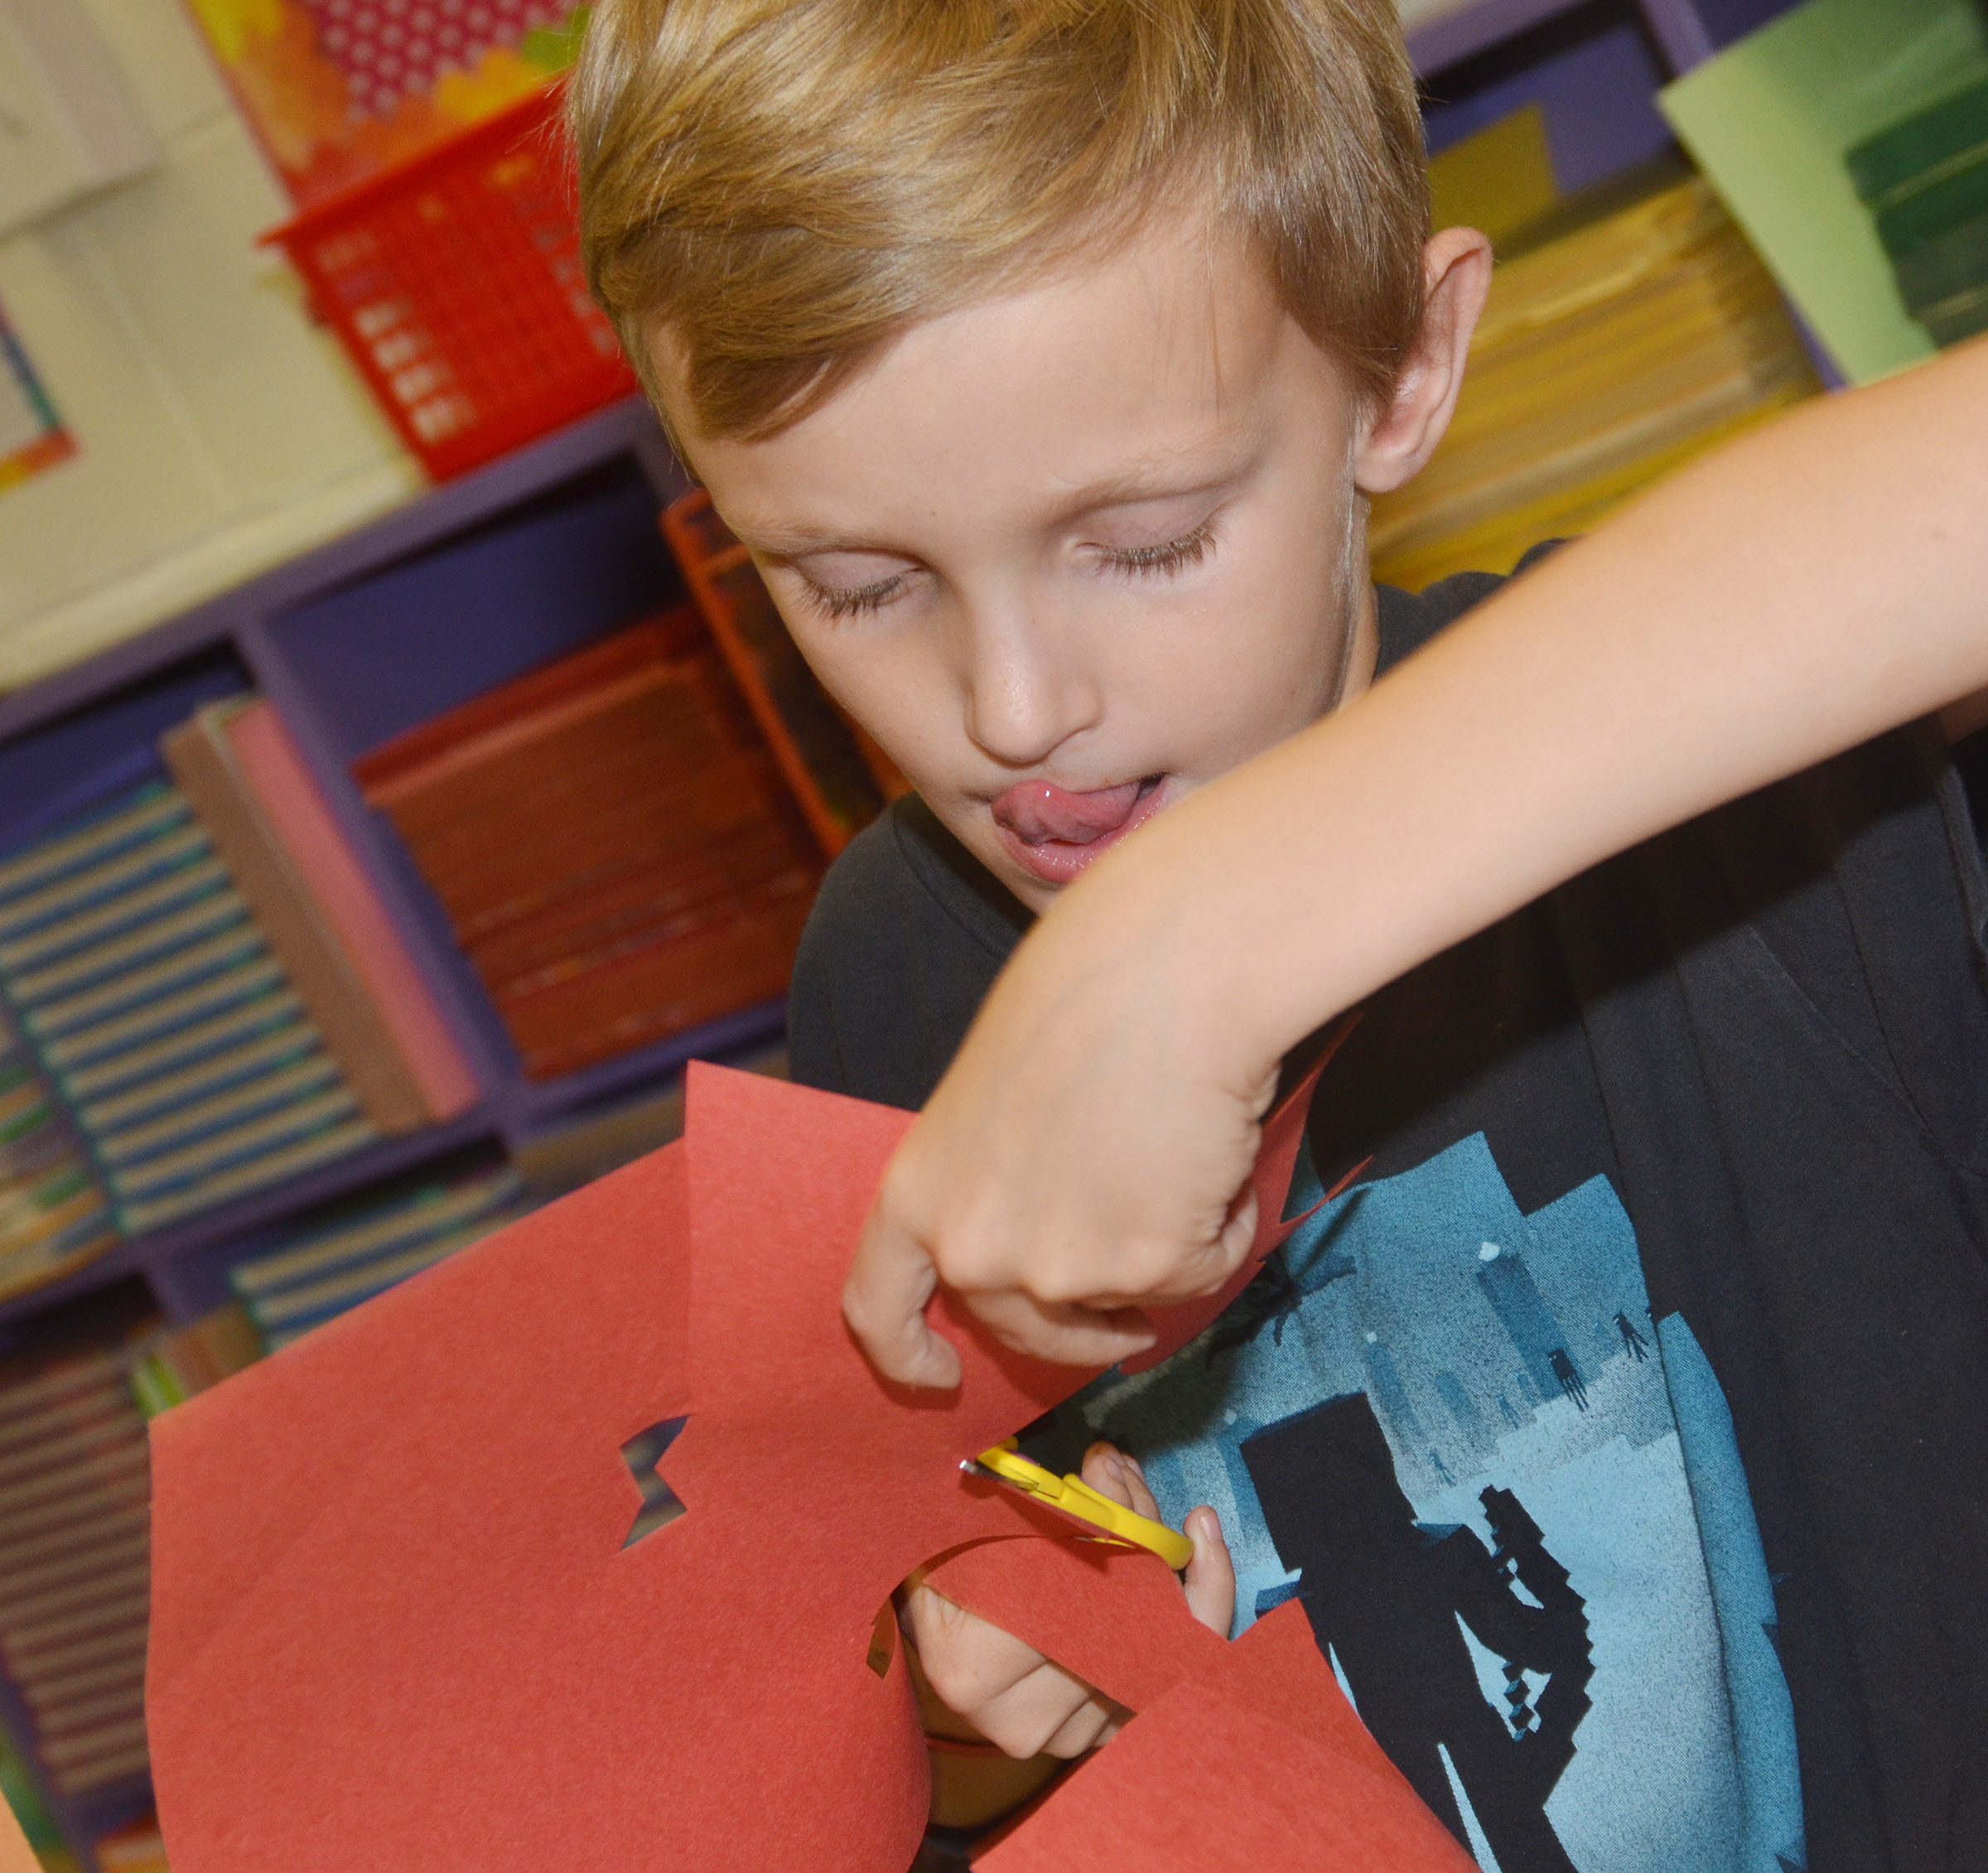 CES third-grader Aaron Ritchie cuts out shapes as he creates his drawing.